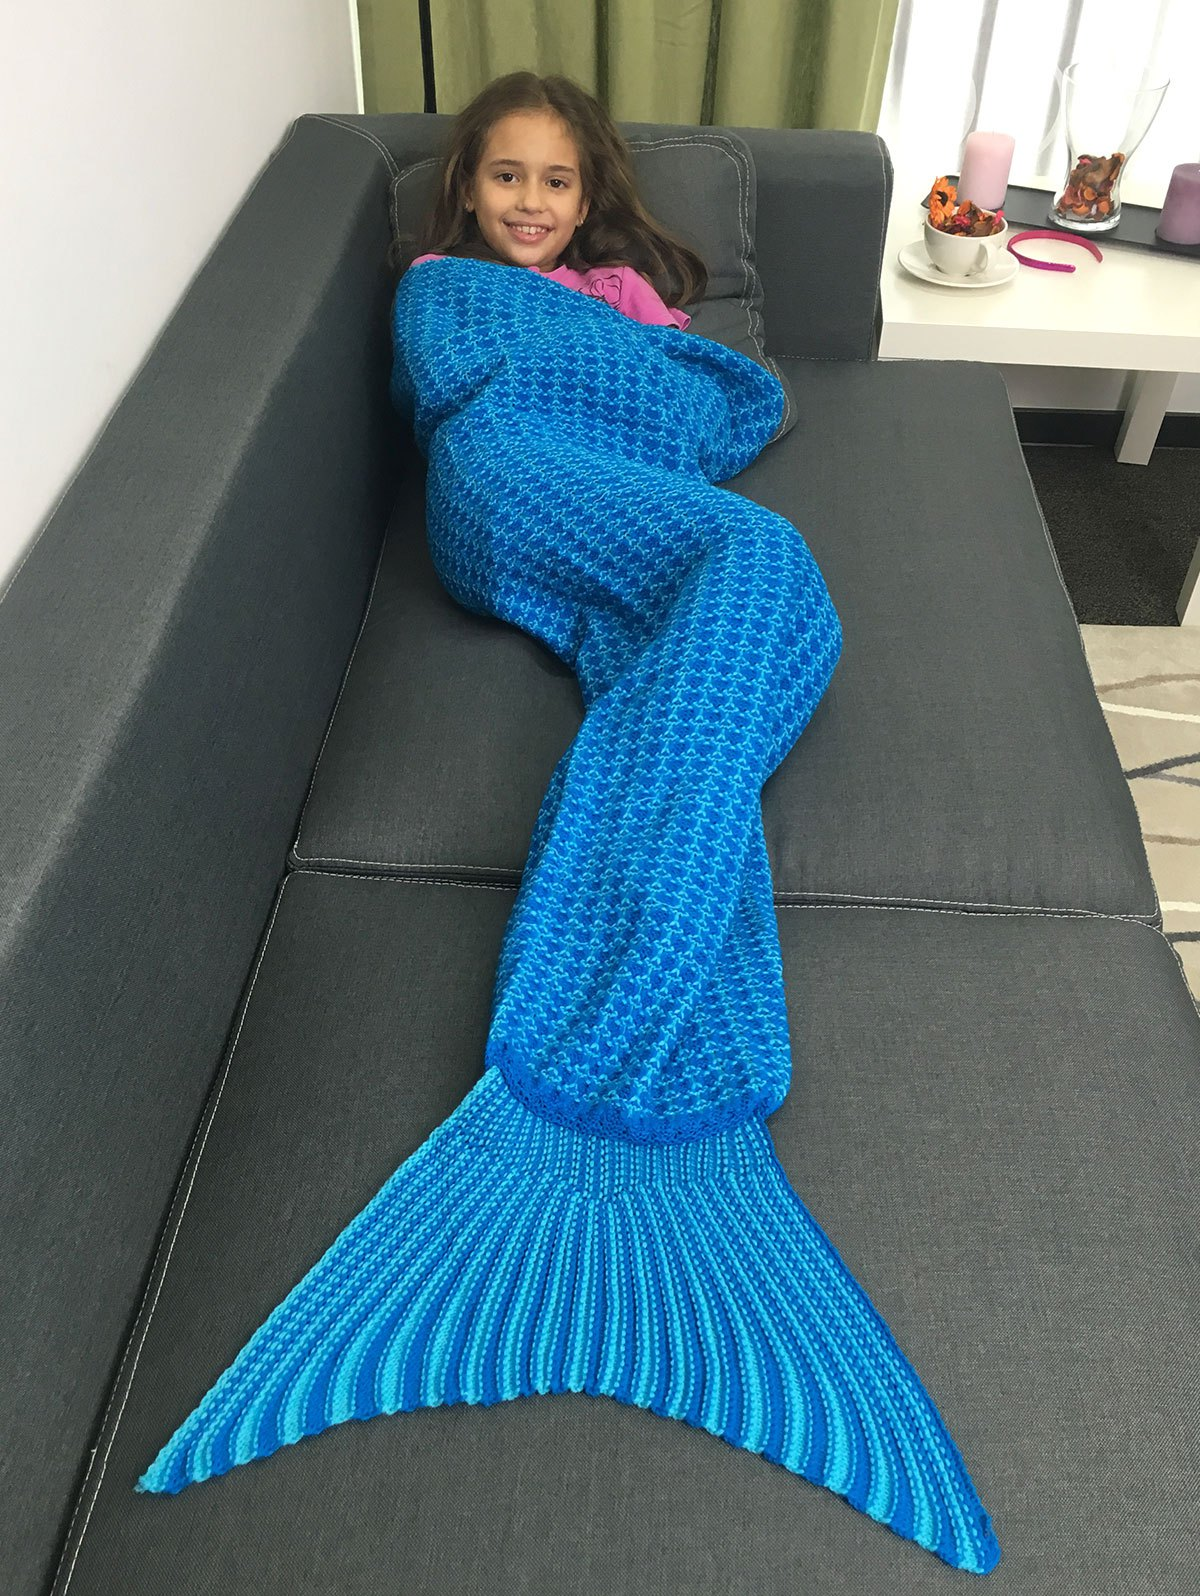 Super Soft Design Acrylic Knitted Mermaid Tail Blanket For KidHome<br><br><br>Color: BLUE